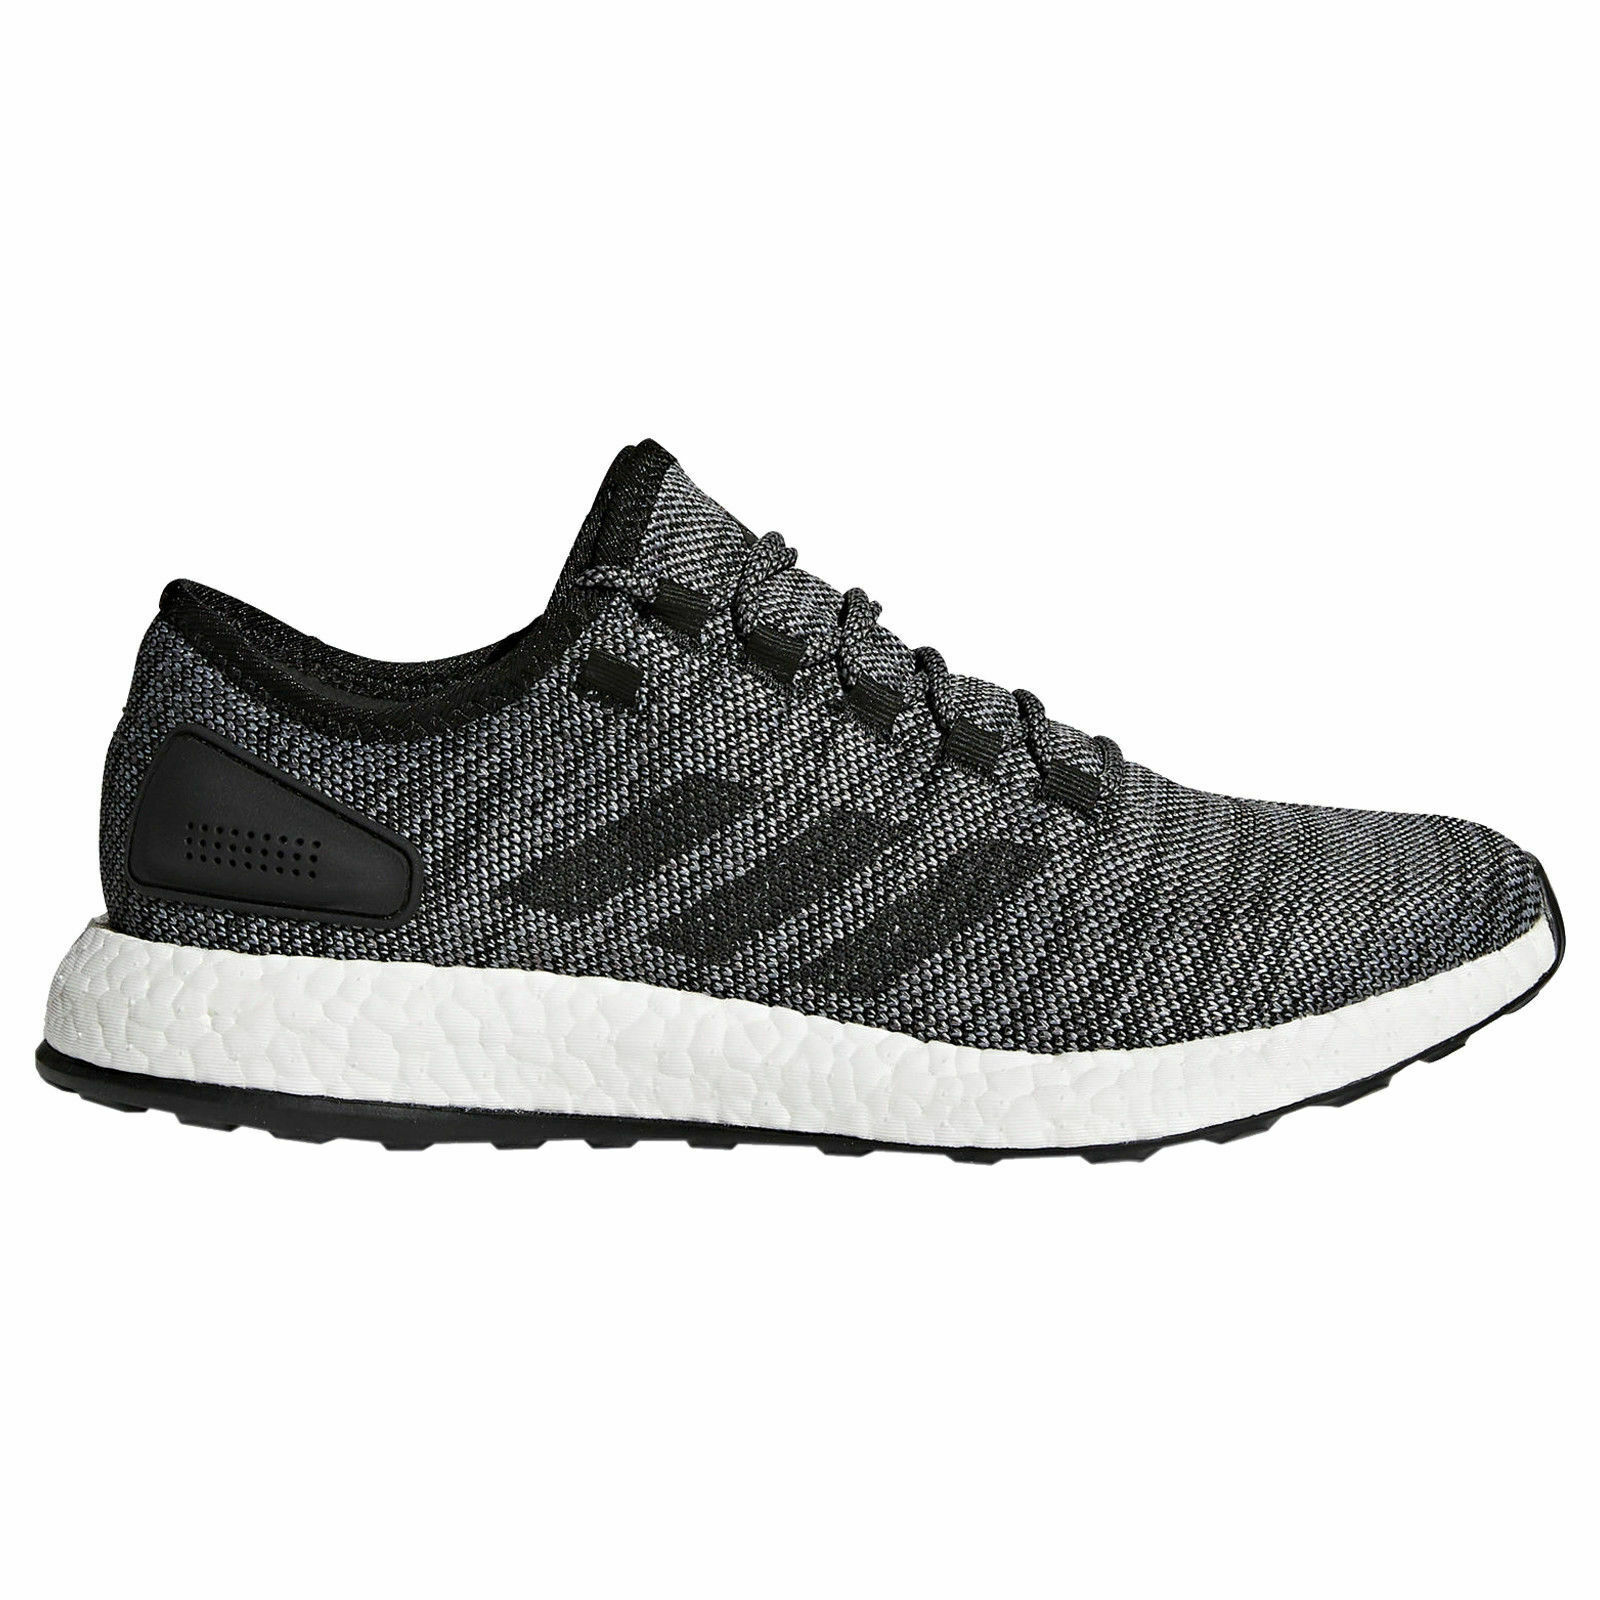 Adidas PureBOOST Size 9 All Terrain Mens Sneakers S80787- Grey, Black Lists@ 160